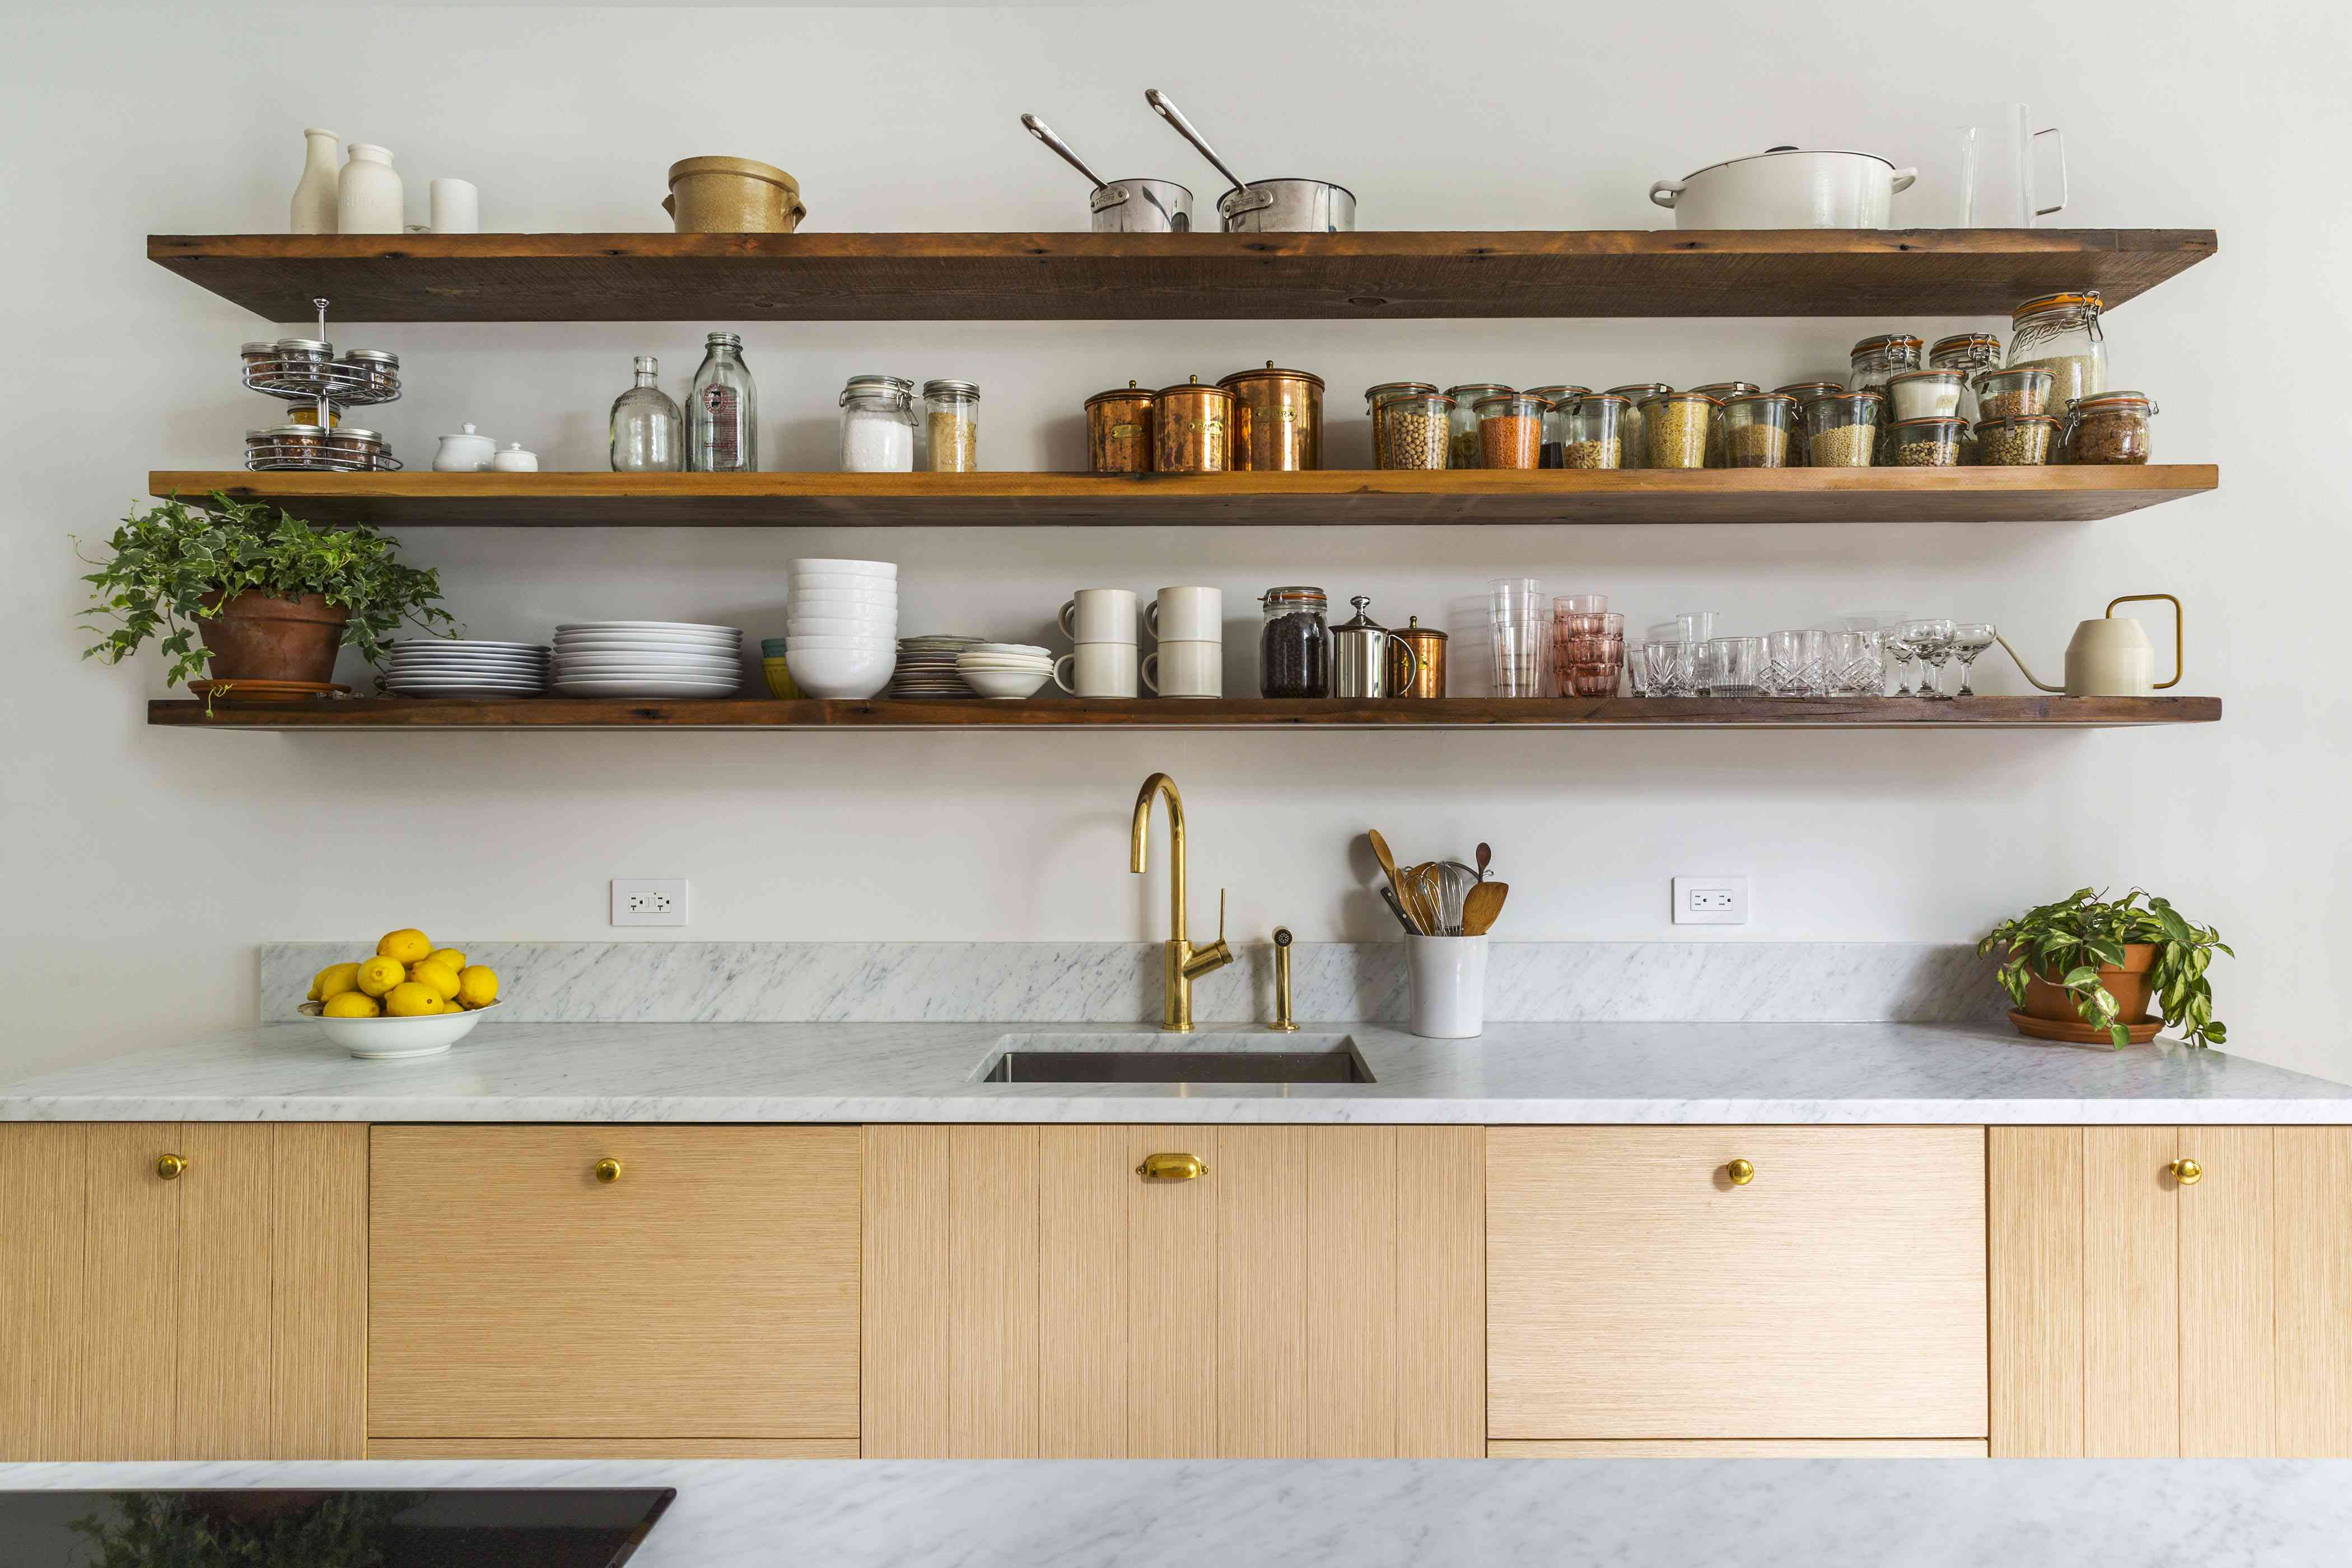 Kitchen with large open shelving units.